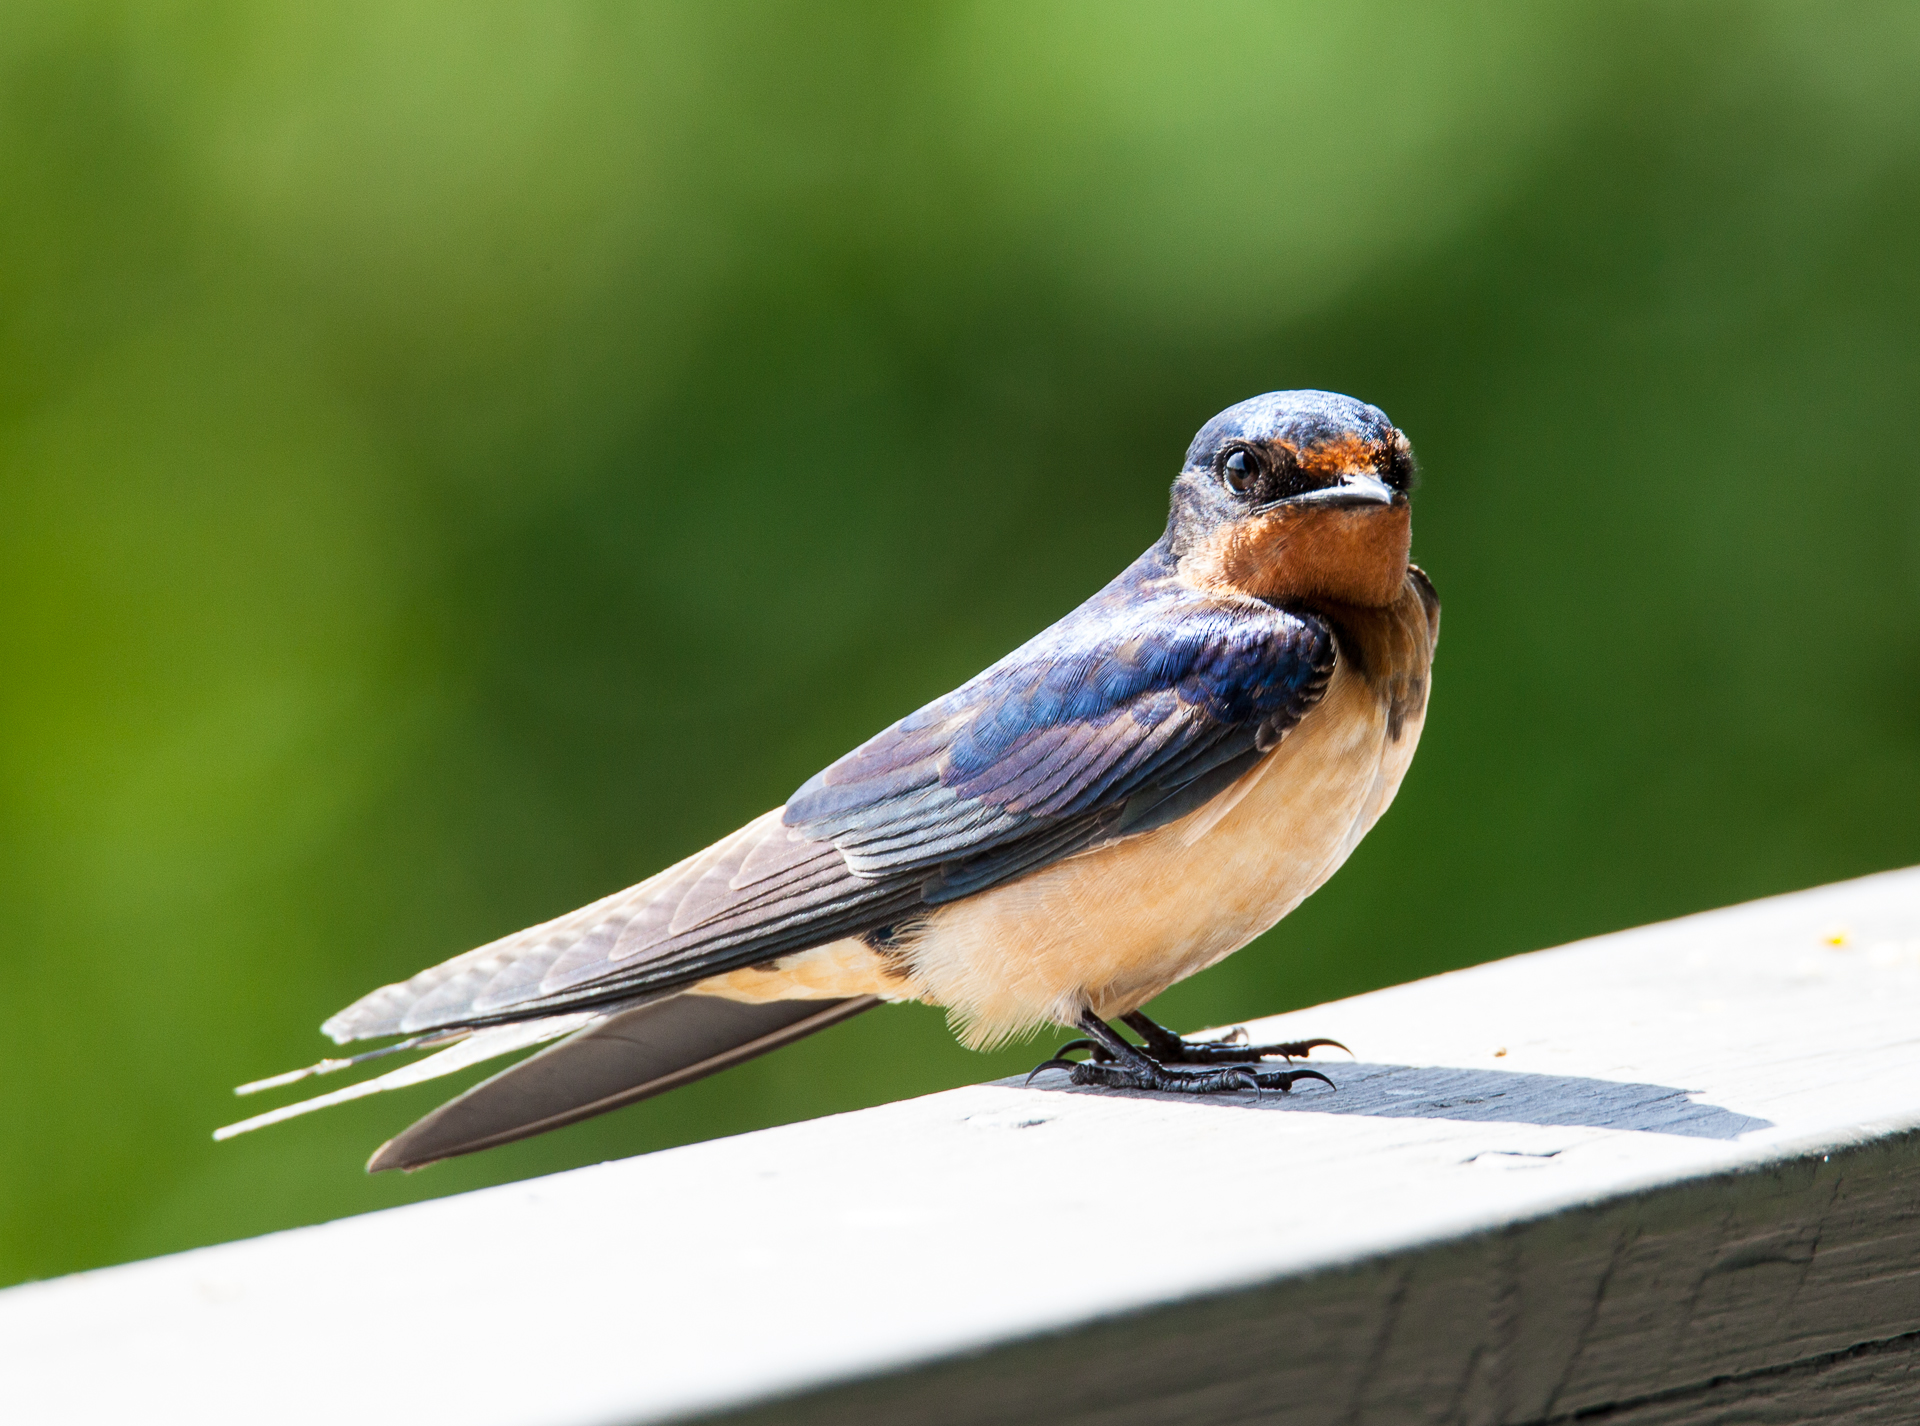 The barn swallows were nesting up above, and were quite content to watch me as I watched them